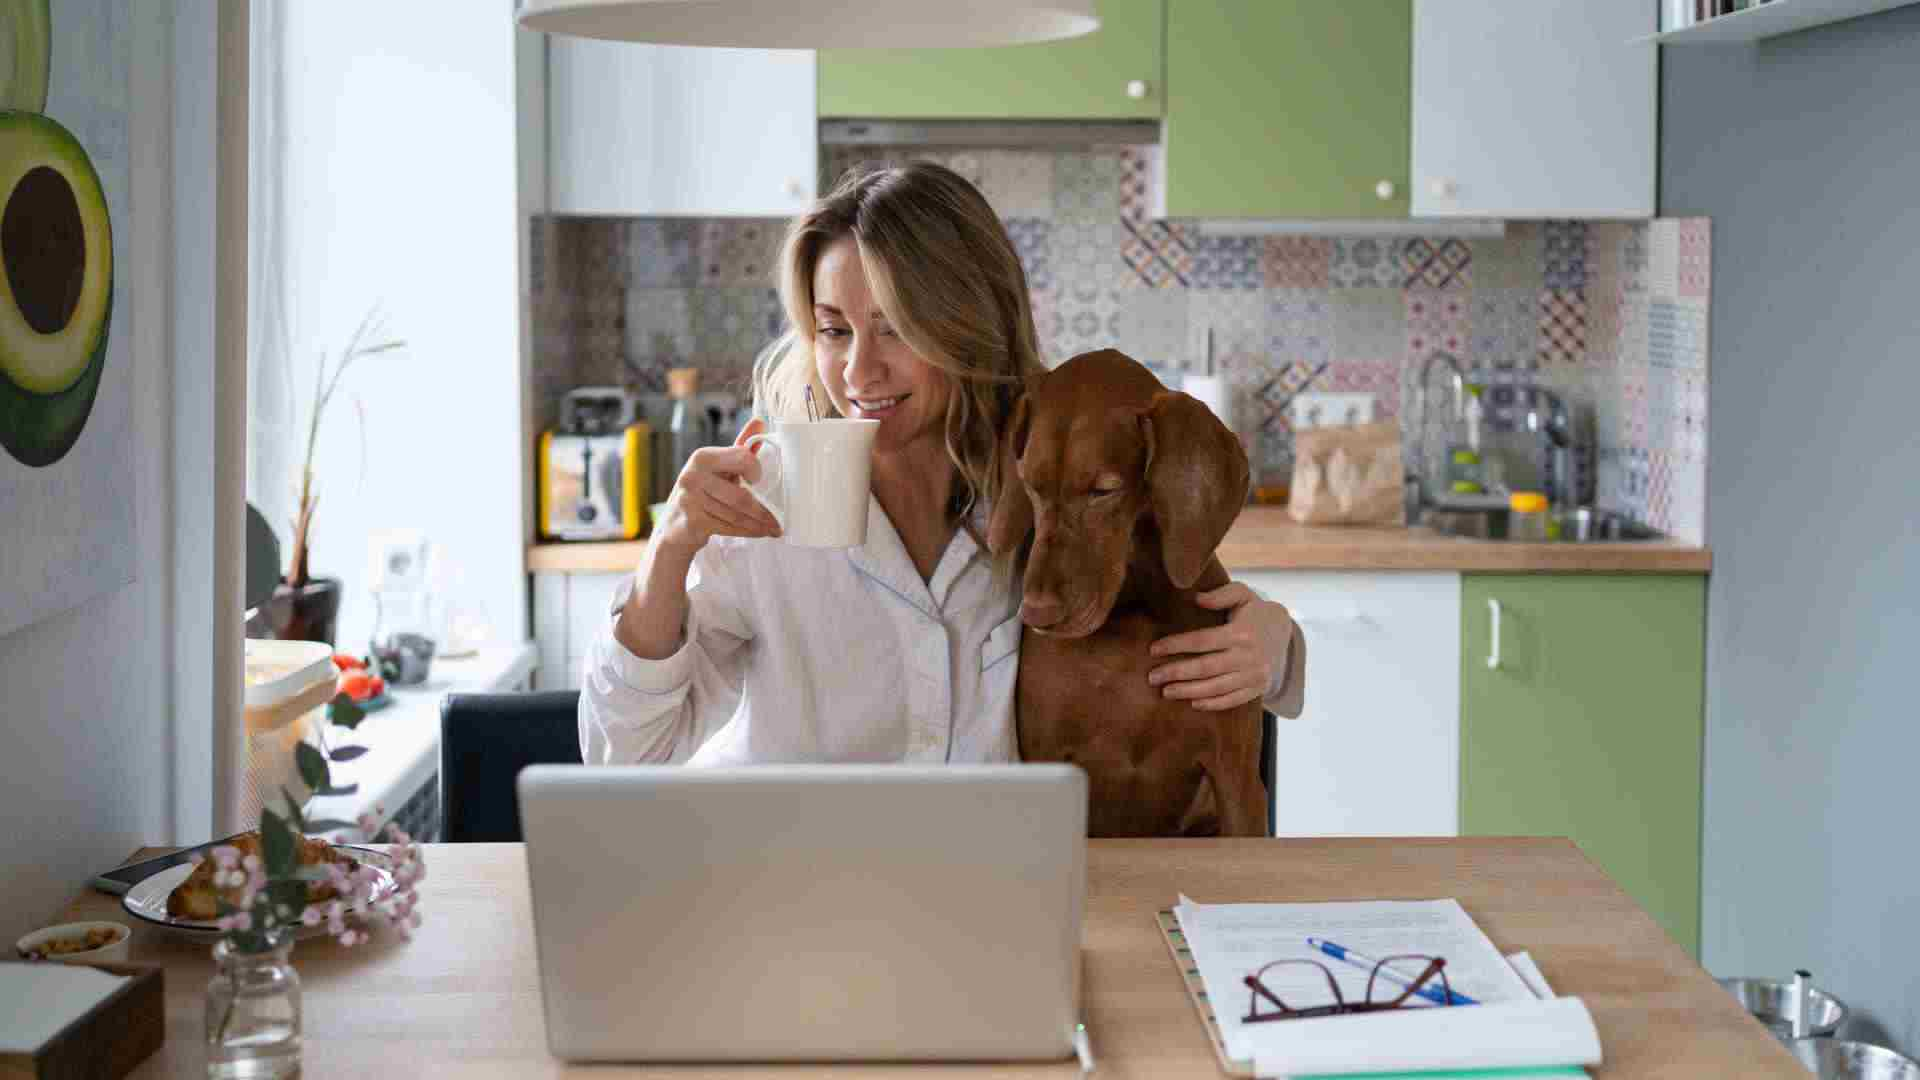 Pet-friendly problems for landlords, owners and strata managers